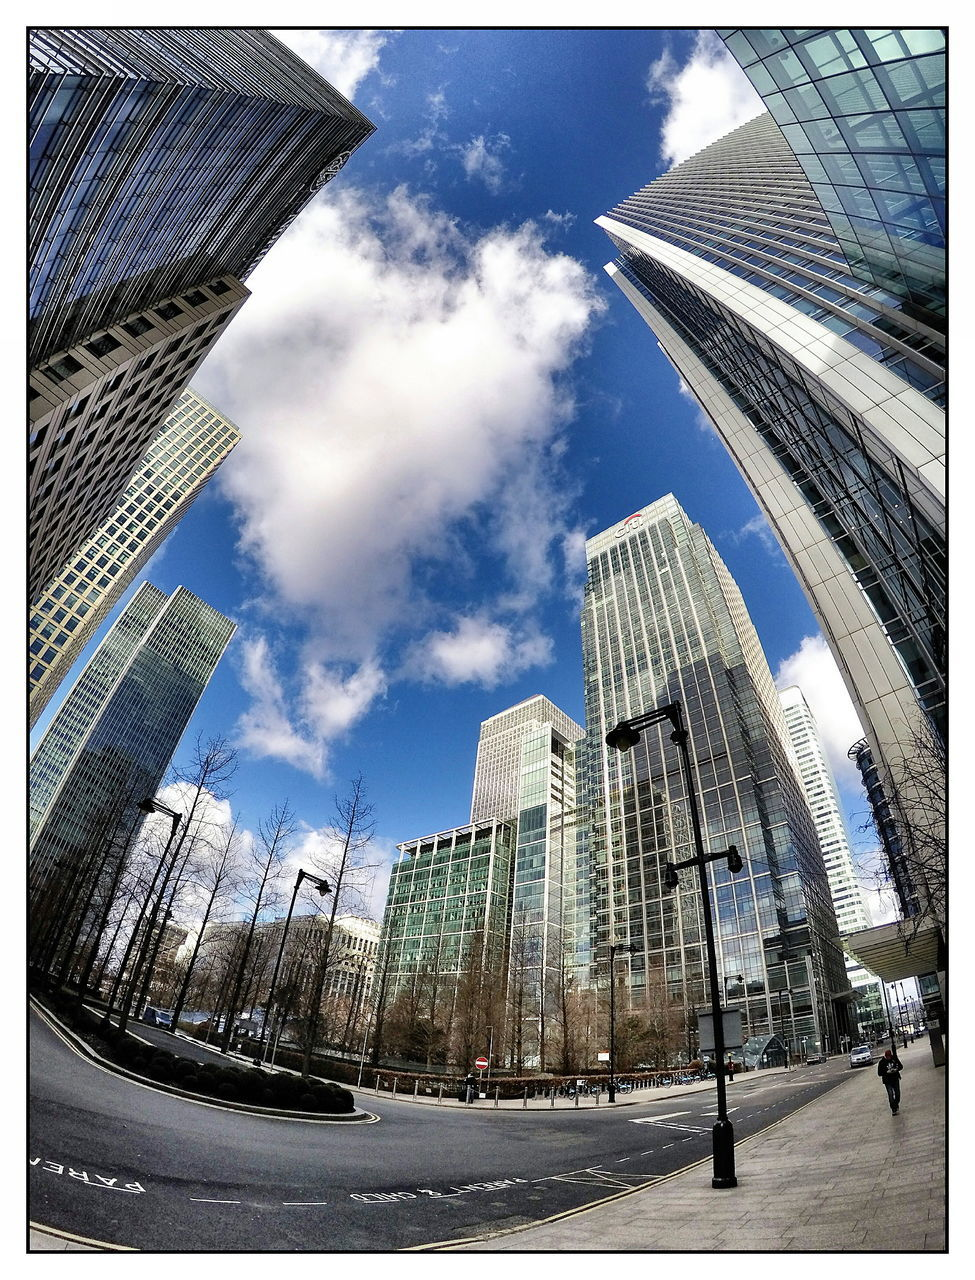 architecture, building exterior, city, skyscraper, built structure, modern, sky, city life, low angle view, office building exterior, outdoors, day, downtown district, financial district, road, travel destinations, fish-eye lens, cityscape, corporate business, no people, office park, urban skyline